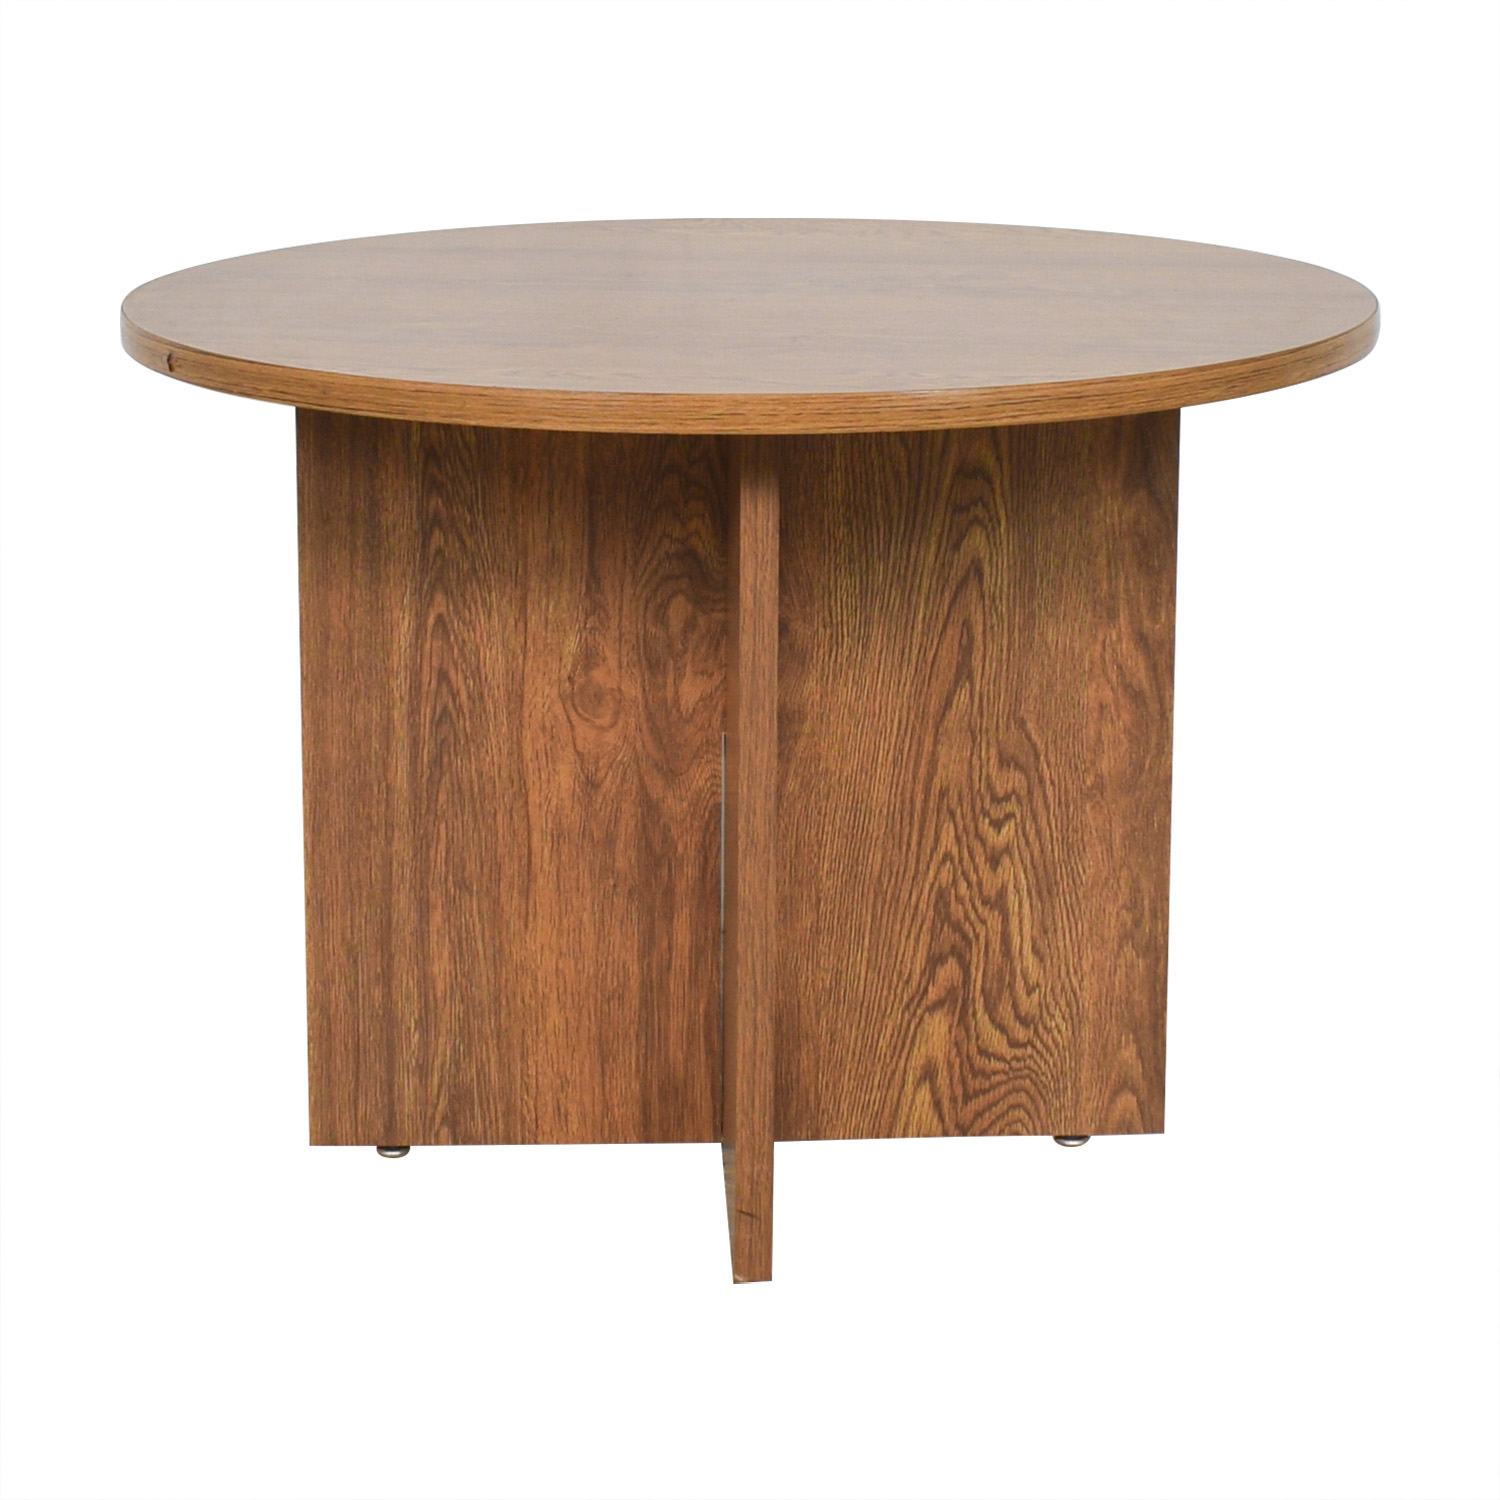 Round Conference Table / Tables